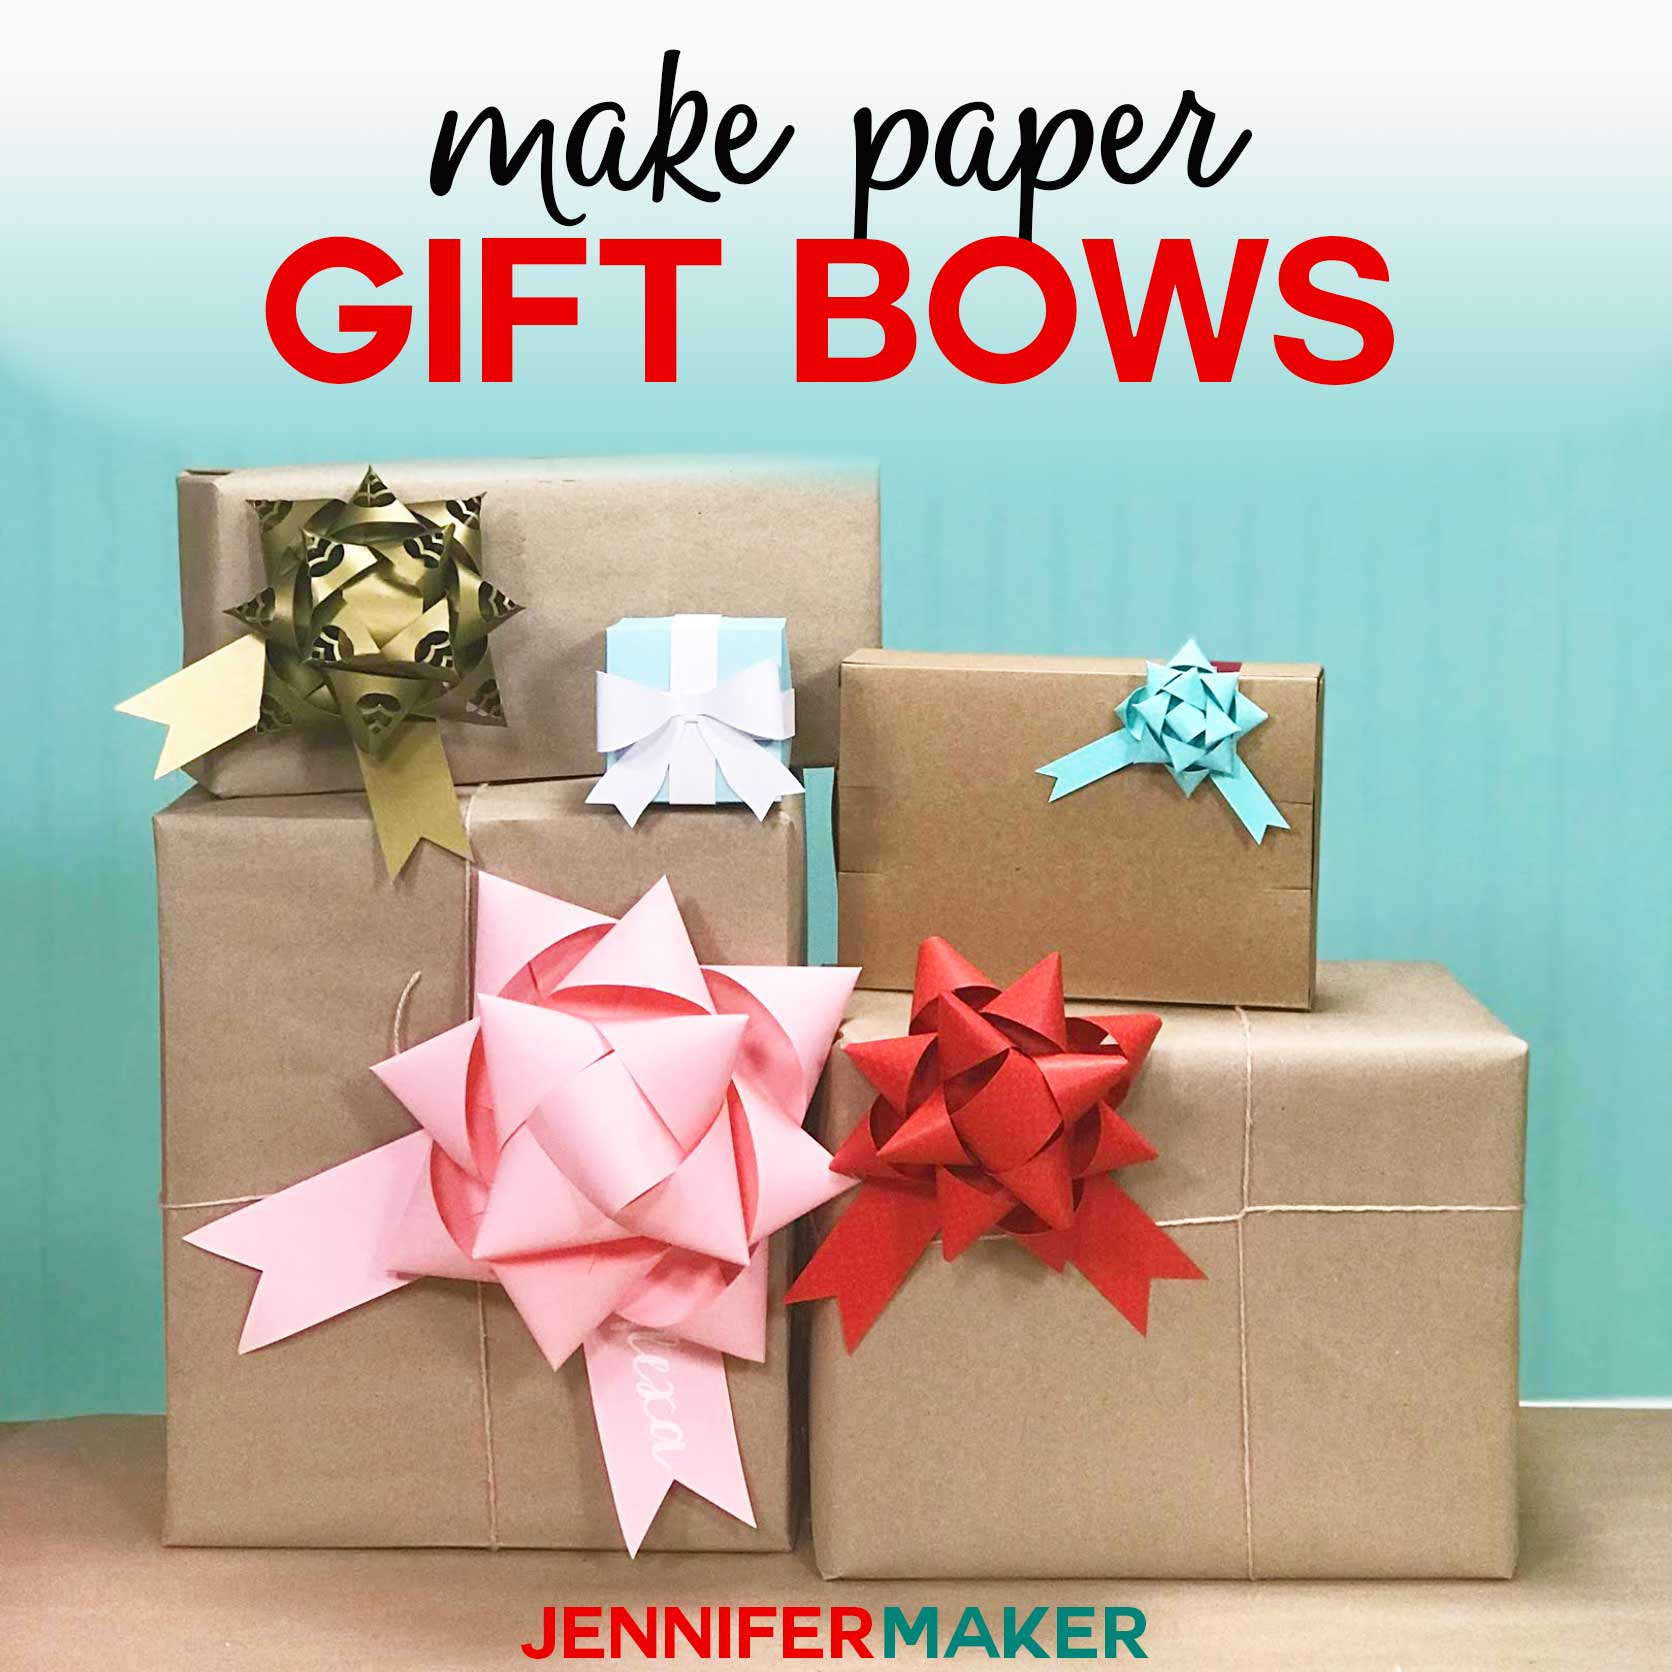 gift wrap gift bows gift topper box of bows floral gift wrap Box floral paper bows floral gift bows paper bows four pack